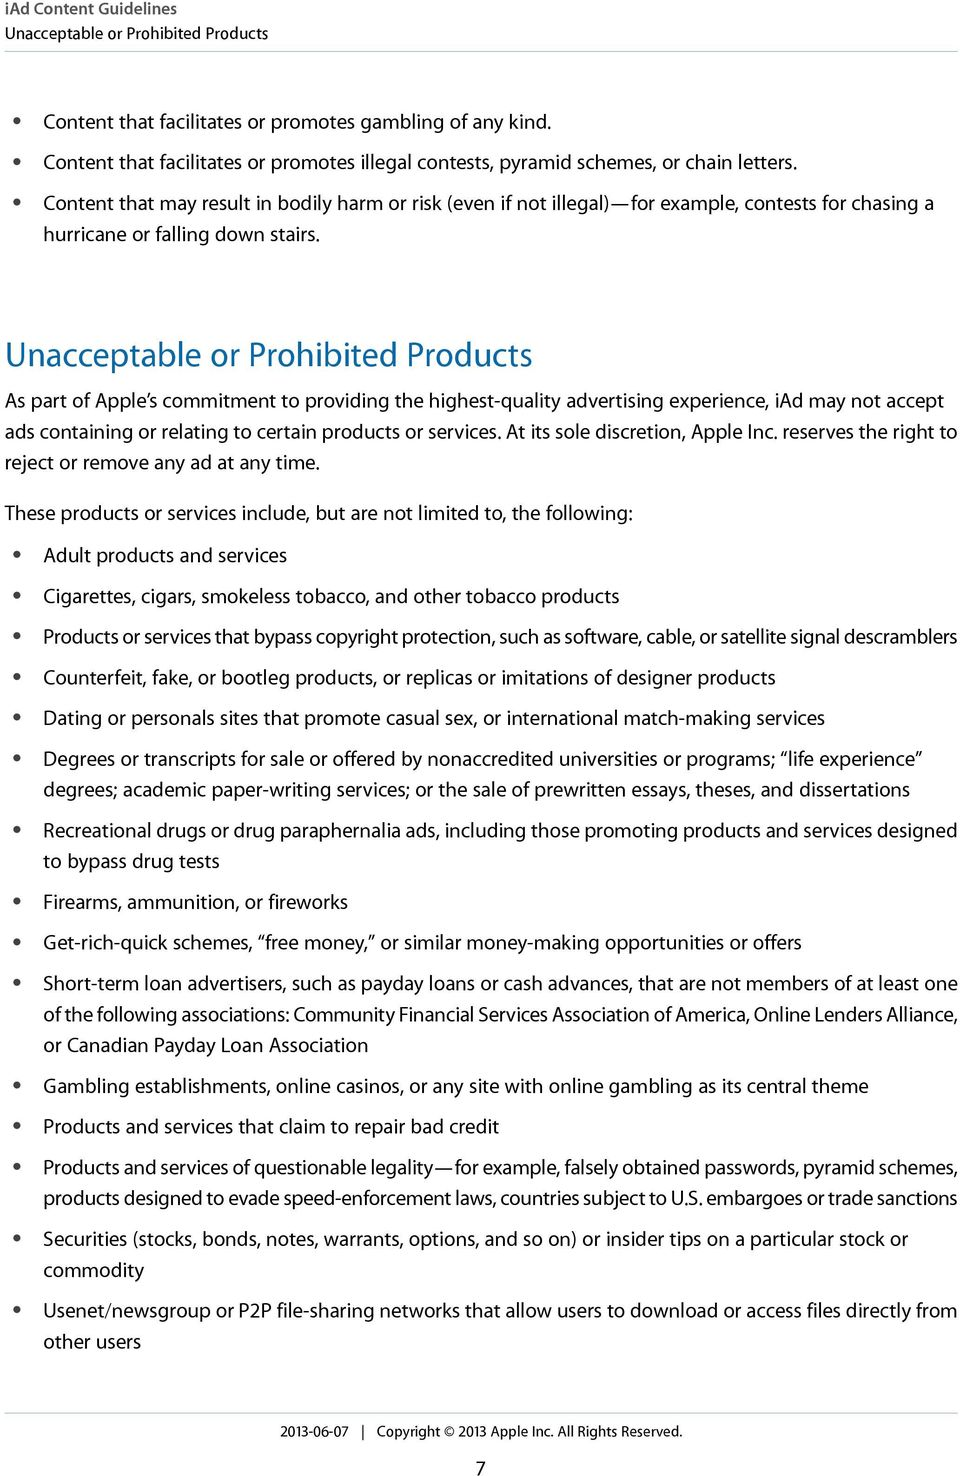 Unacceptable or Prohibited Products As part of Apple s commitment to providing the highest-quality advertising experience, iad may not accept ads containing or relating to certain products or